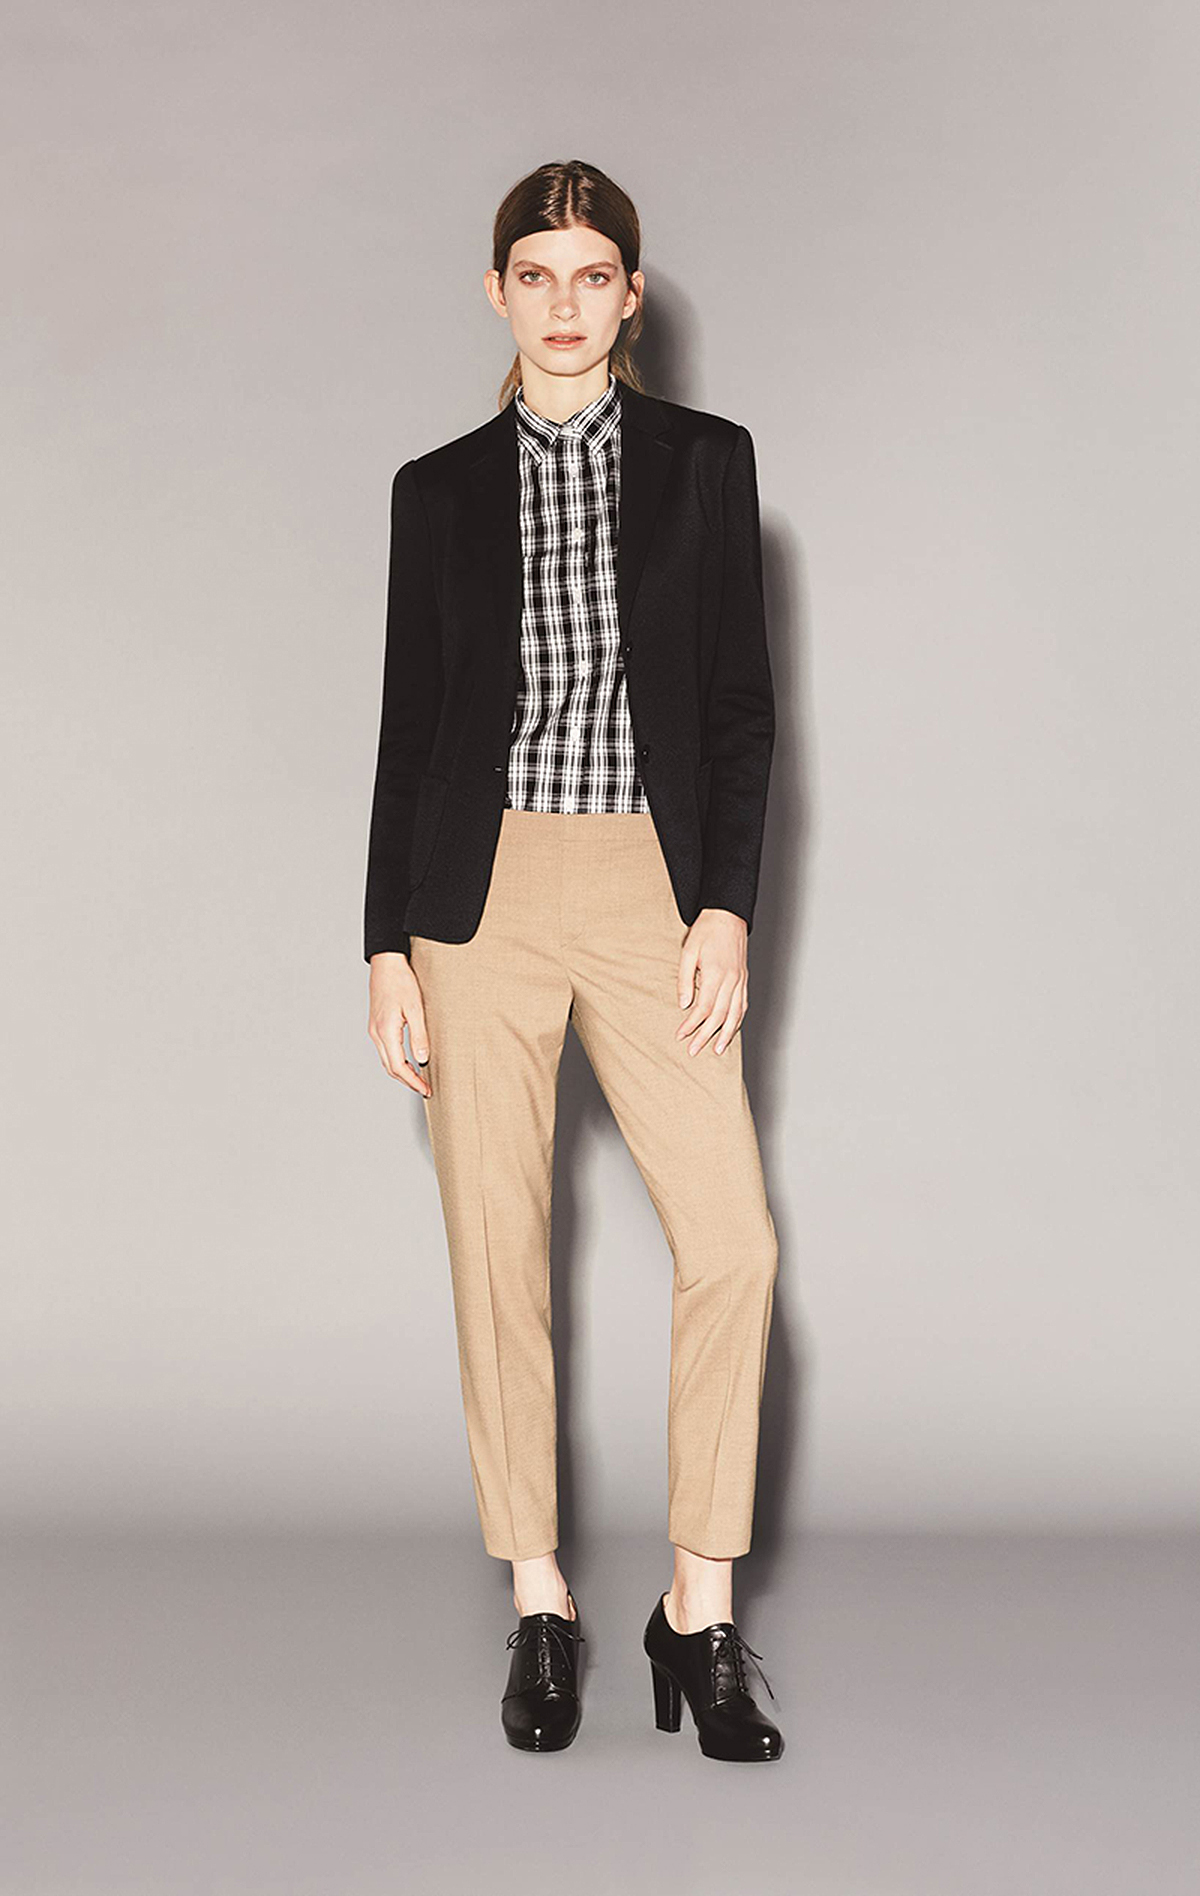 Trice Nagusara Uniqlo Smart Style Pants 1